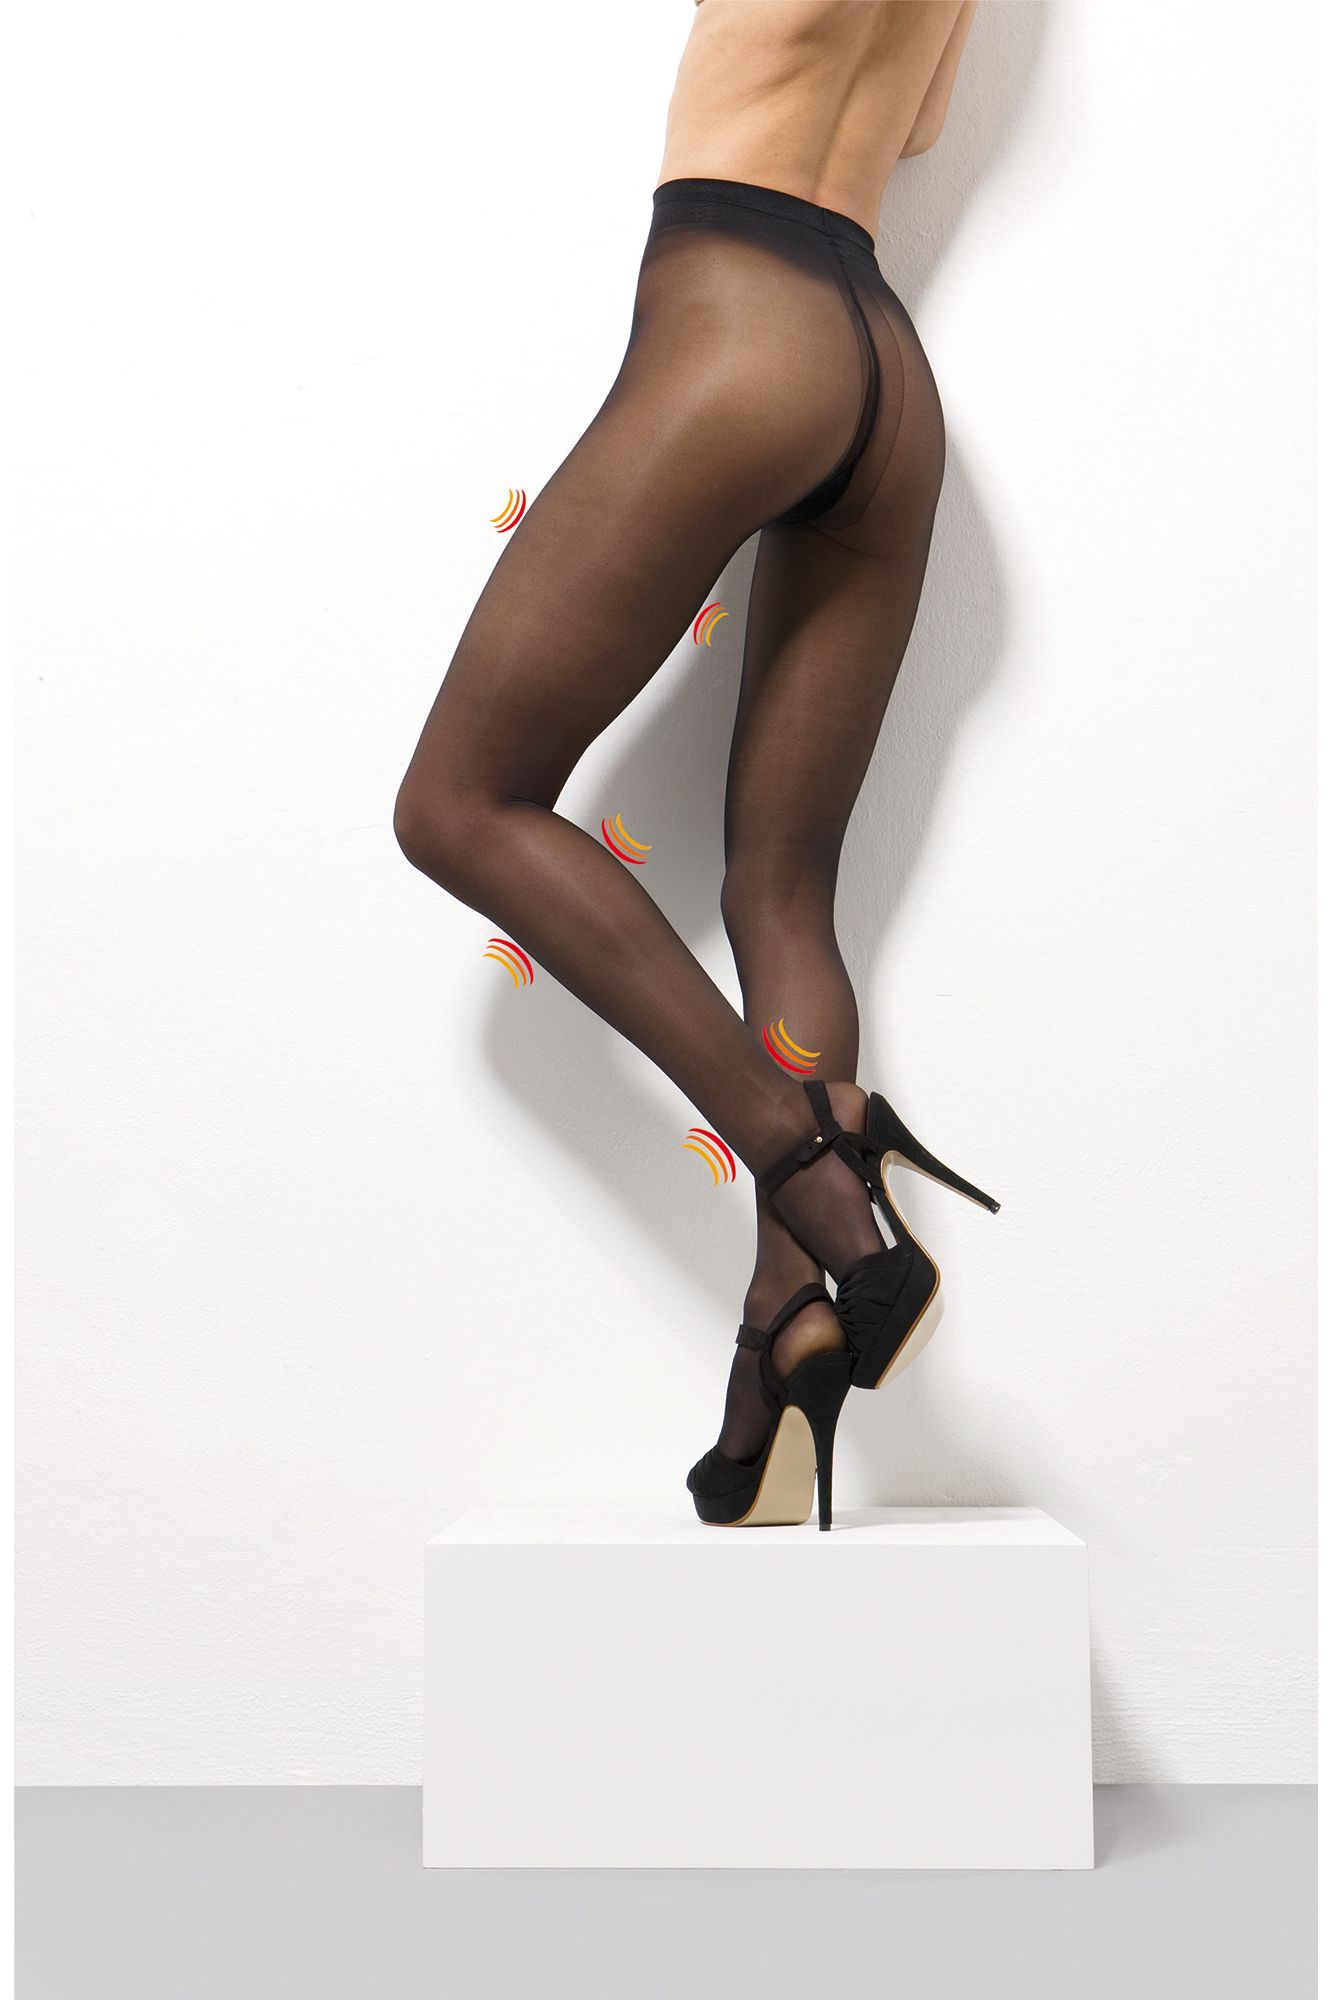 Find Sheer Pantyhose For